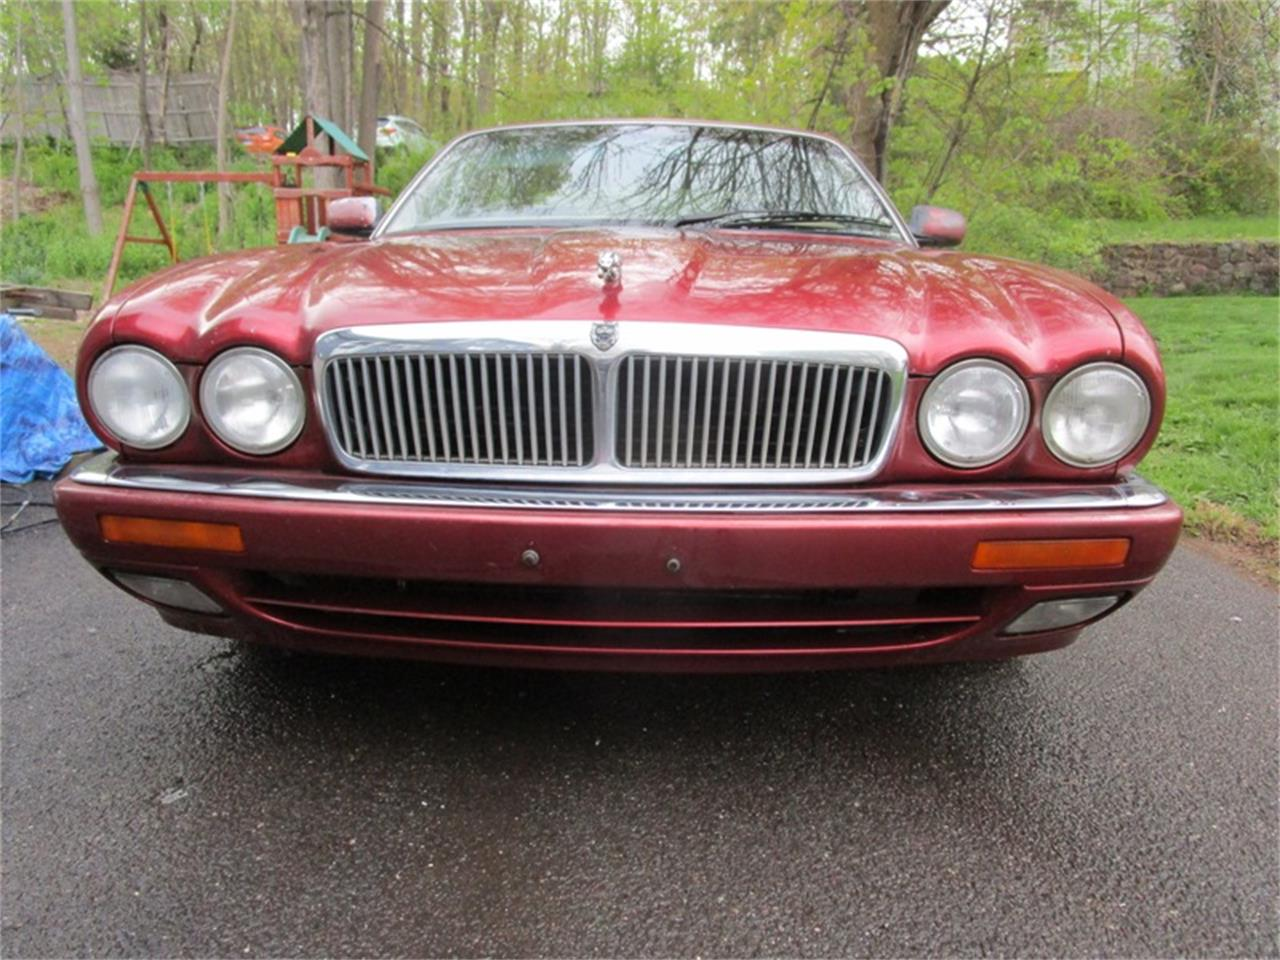 Large Picture of '95 XJ6 located in New Britain Connecticut - $1,000.00 - Q2PU